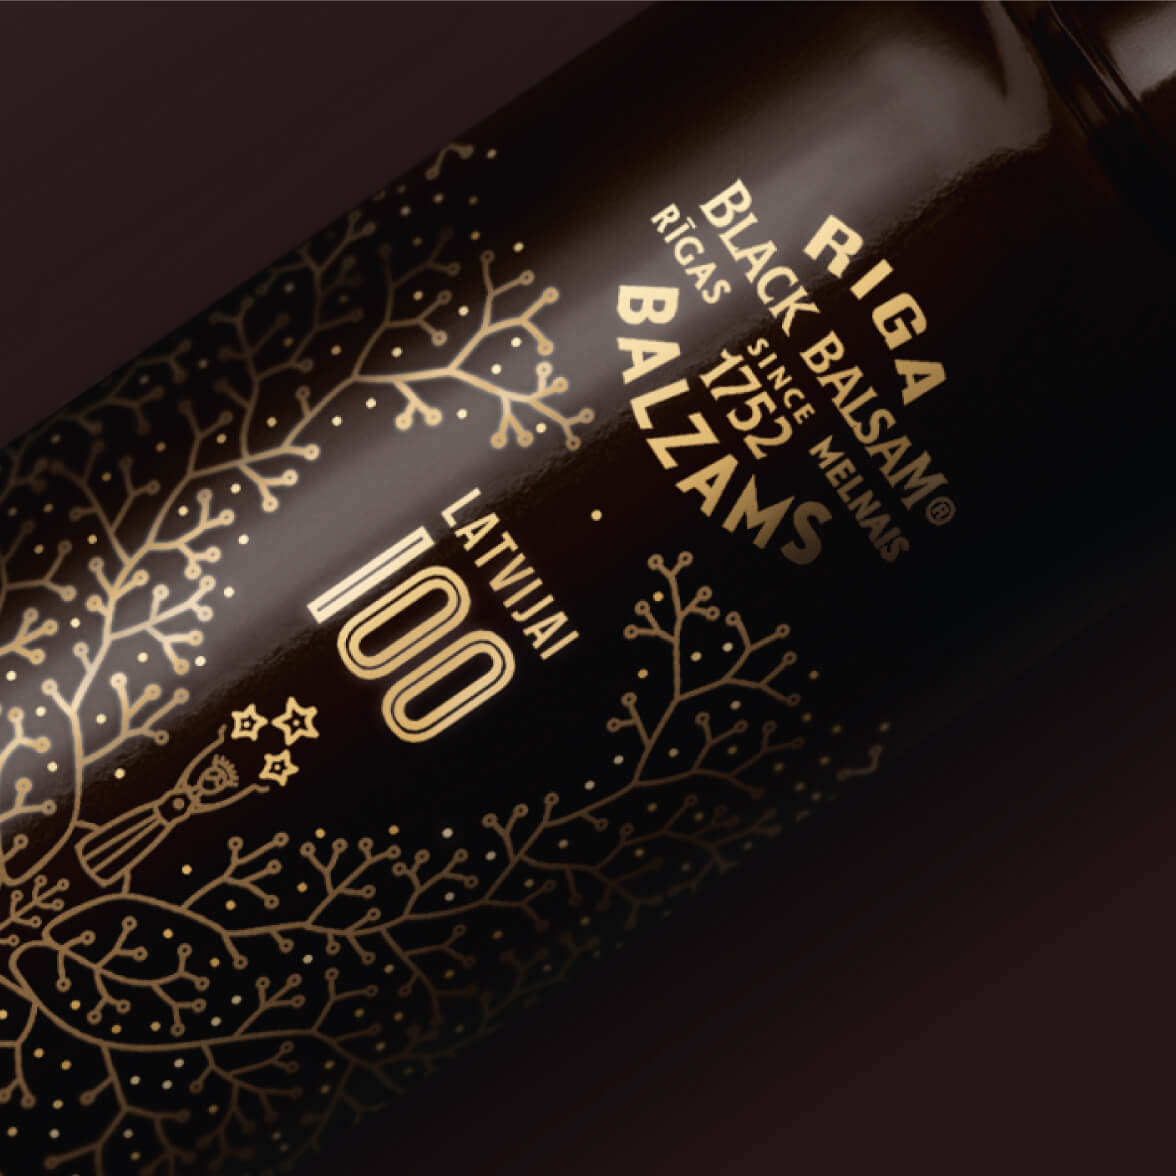 Riga Black Balsam LV100 - packaging design